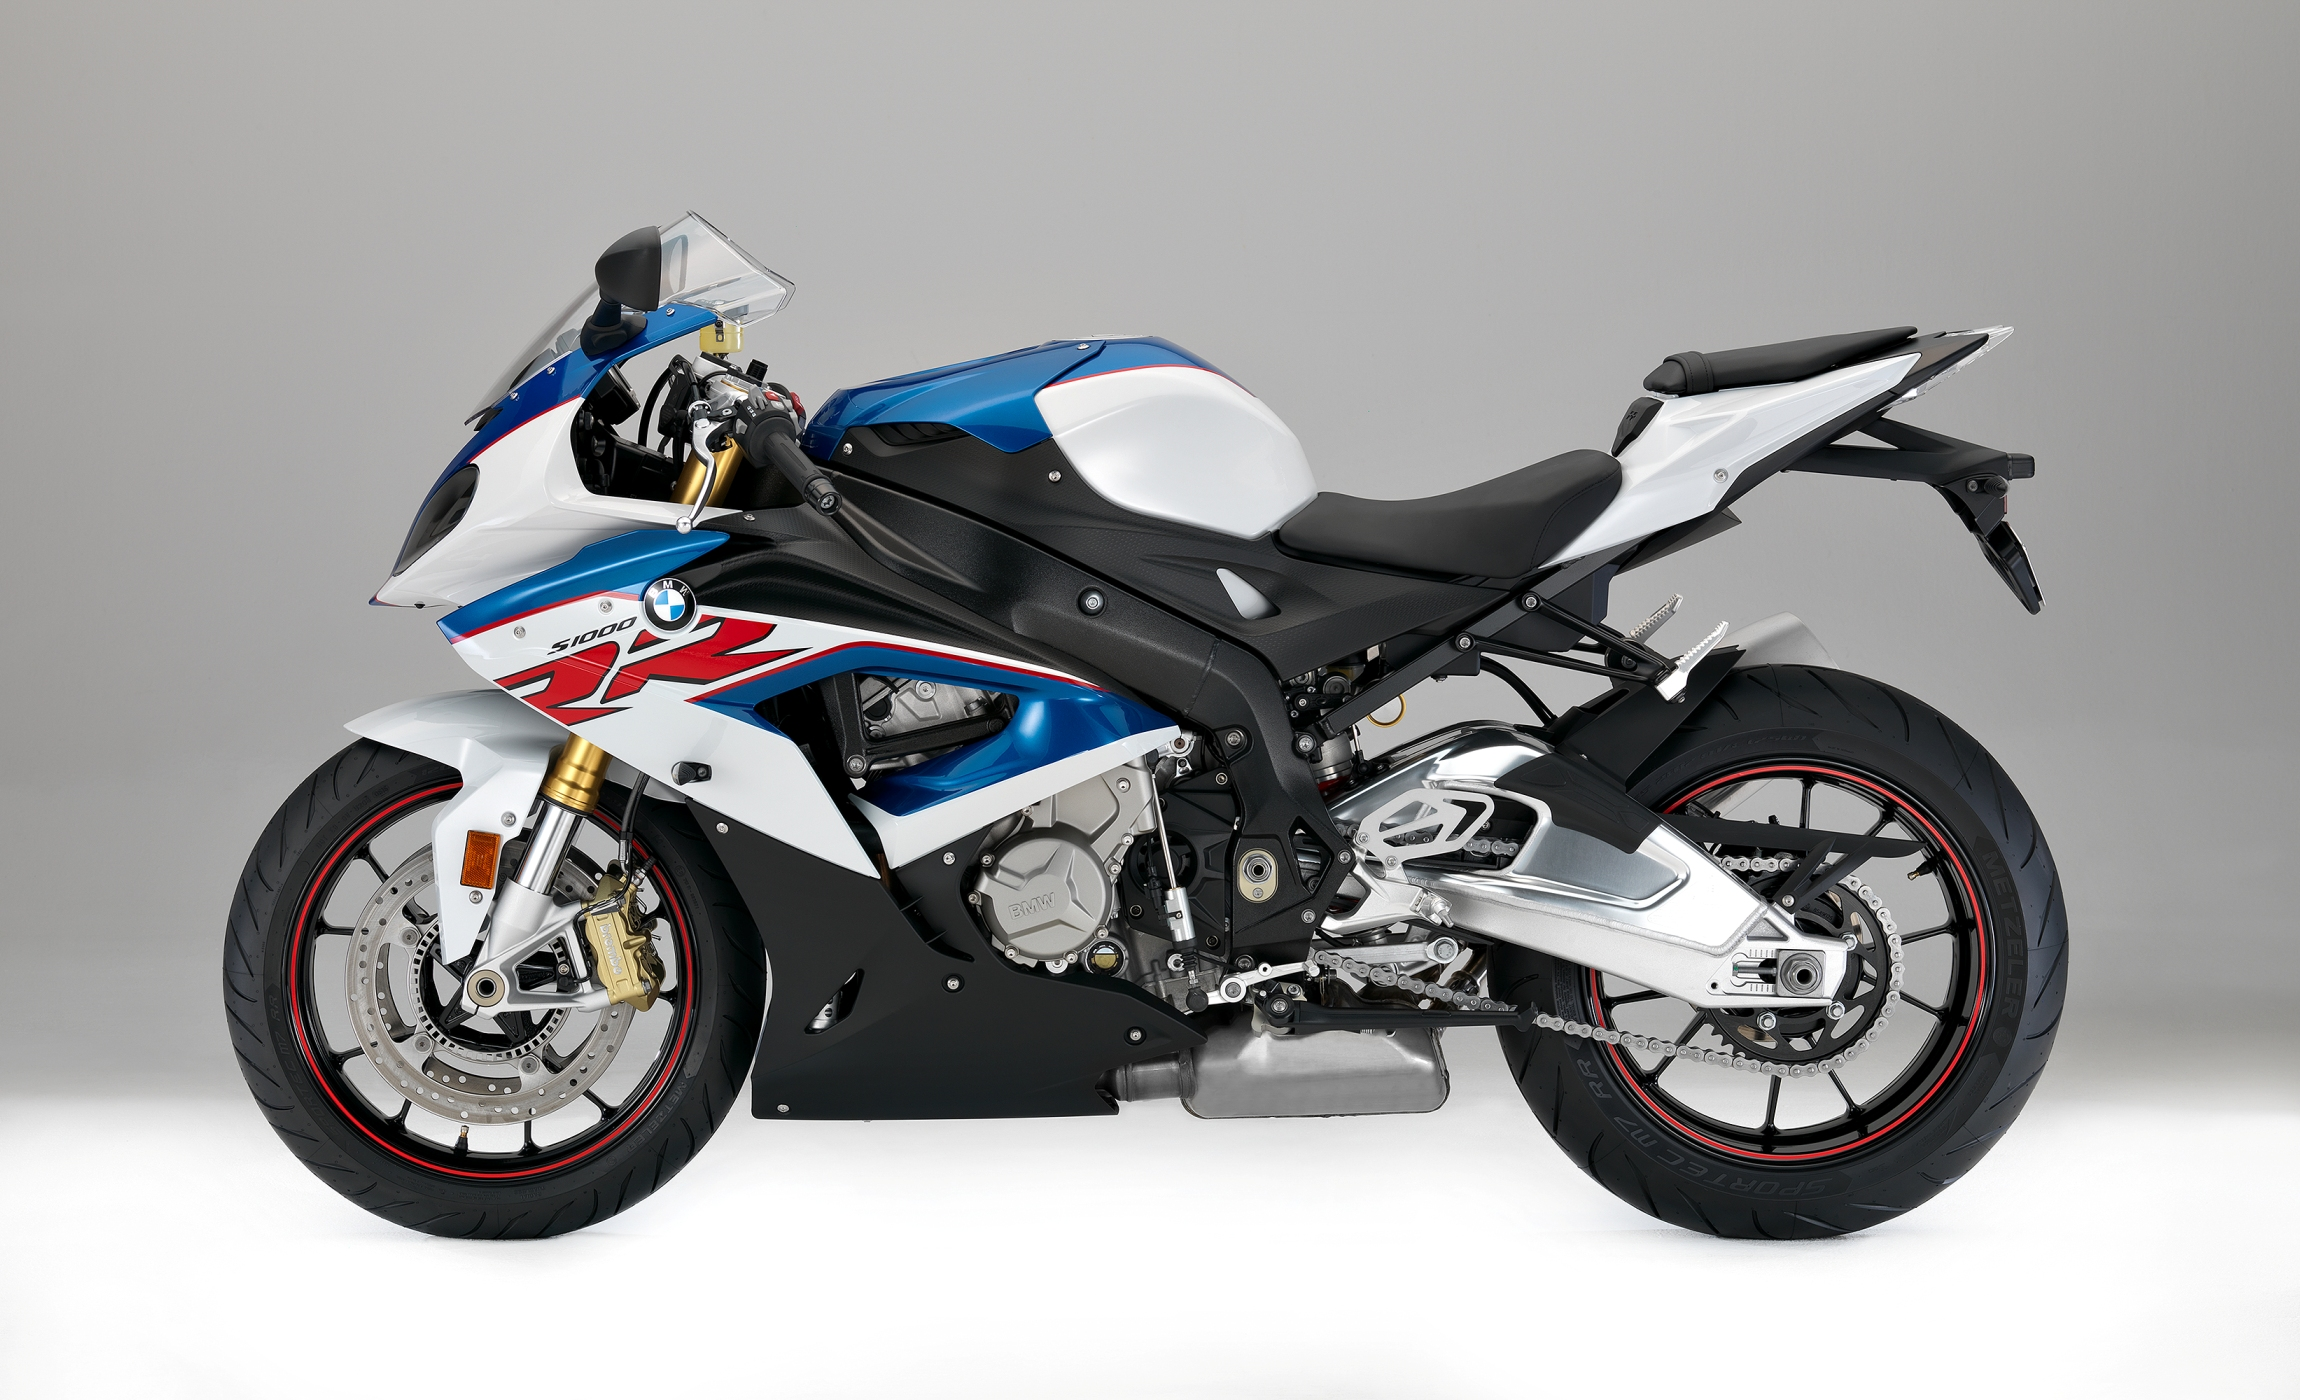 Bmw S 1000 Rr Review Revzilla Engine Covers Diagram Free Furthermore Kawasaki Motorcycle